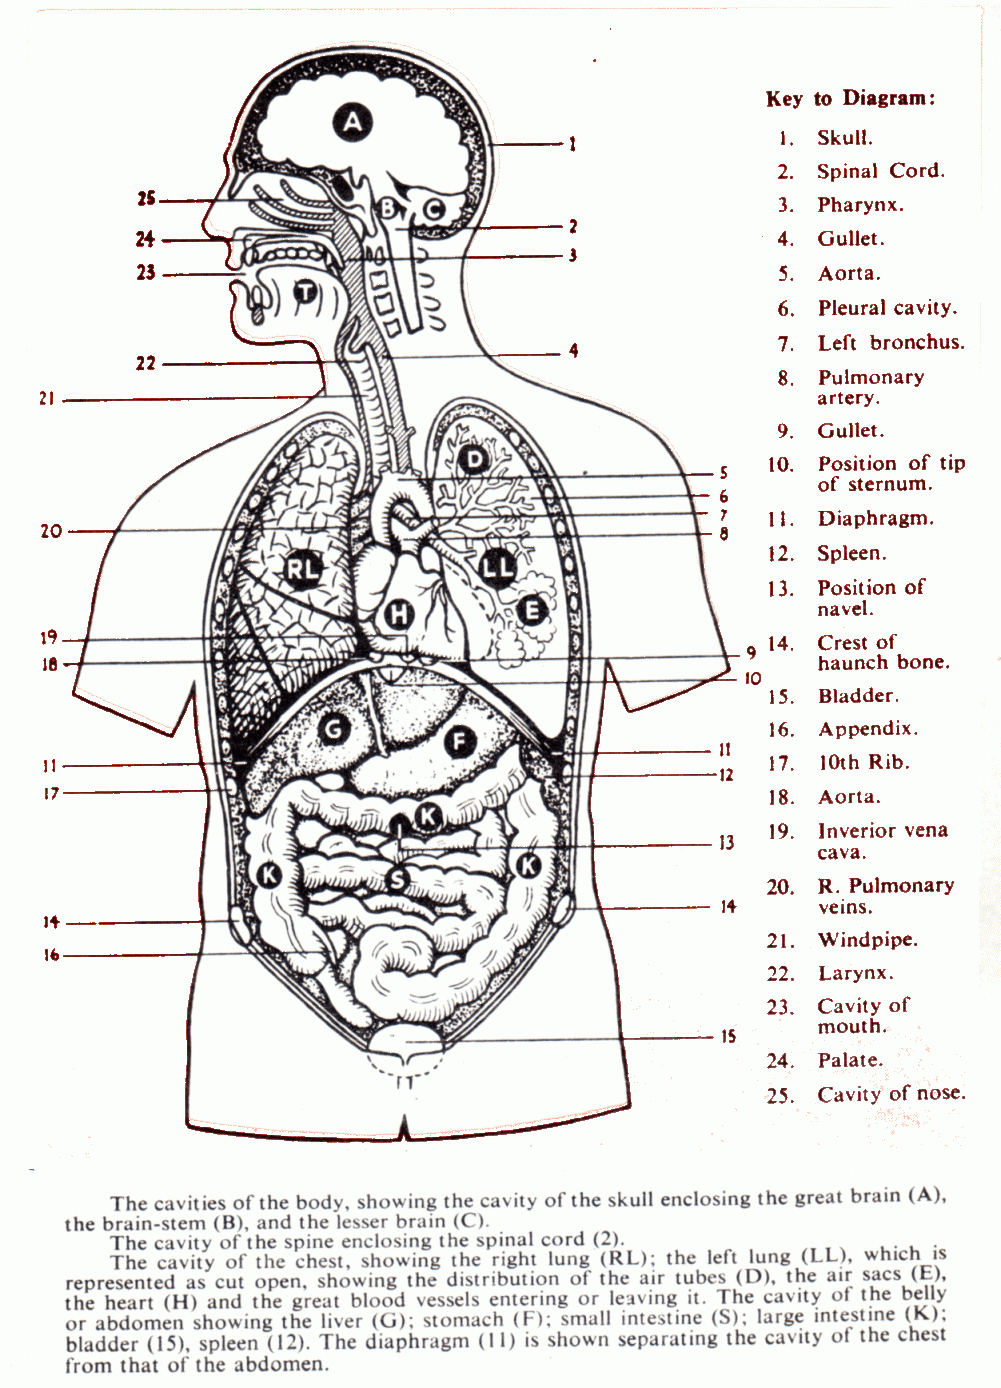 Organs In The Body Cavities.